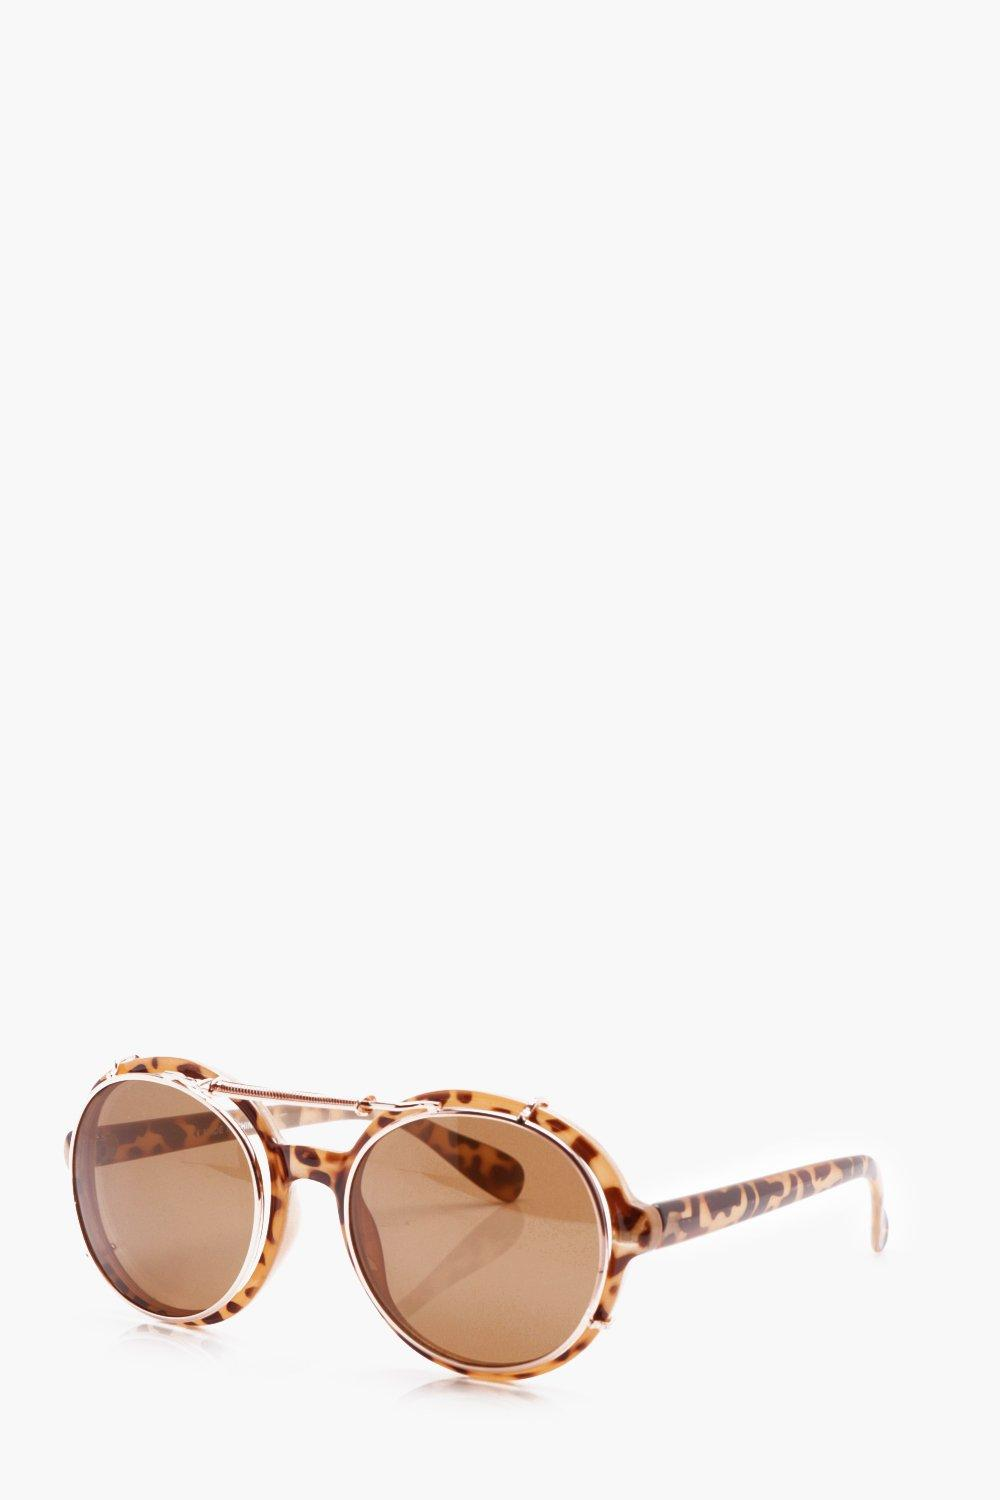 boohooMAN brown Tortoise Double Lens Sunglasses